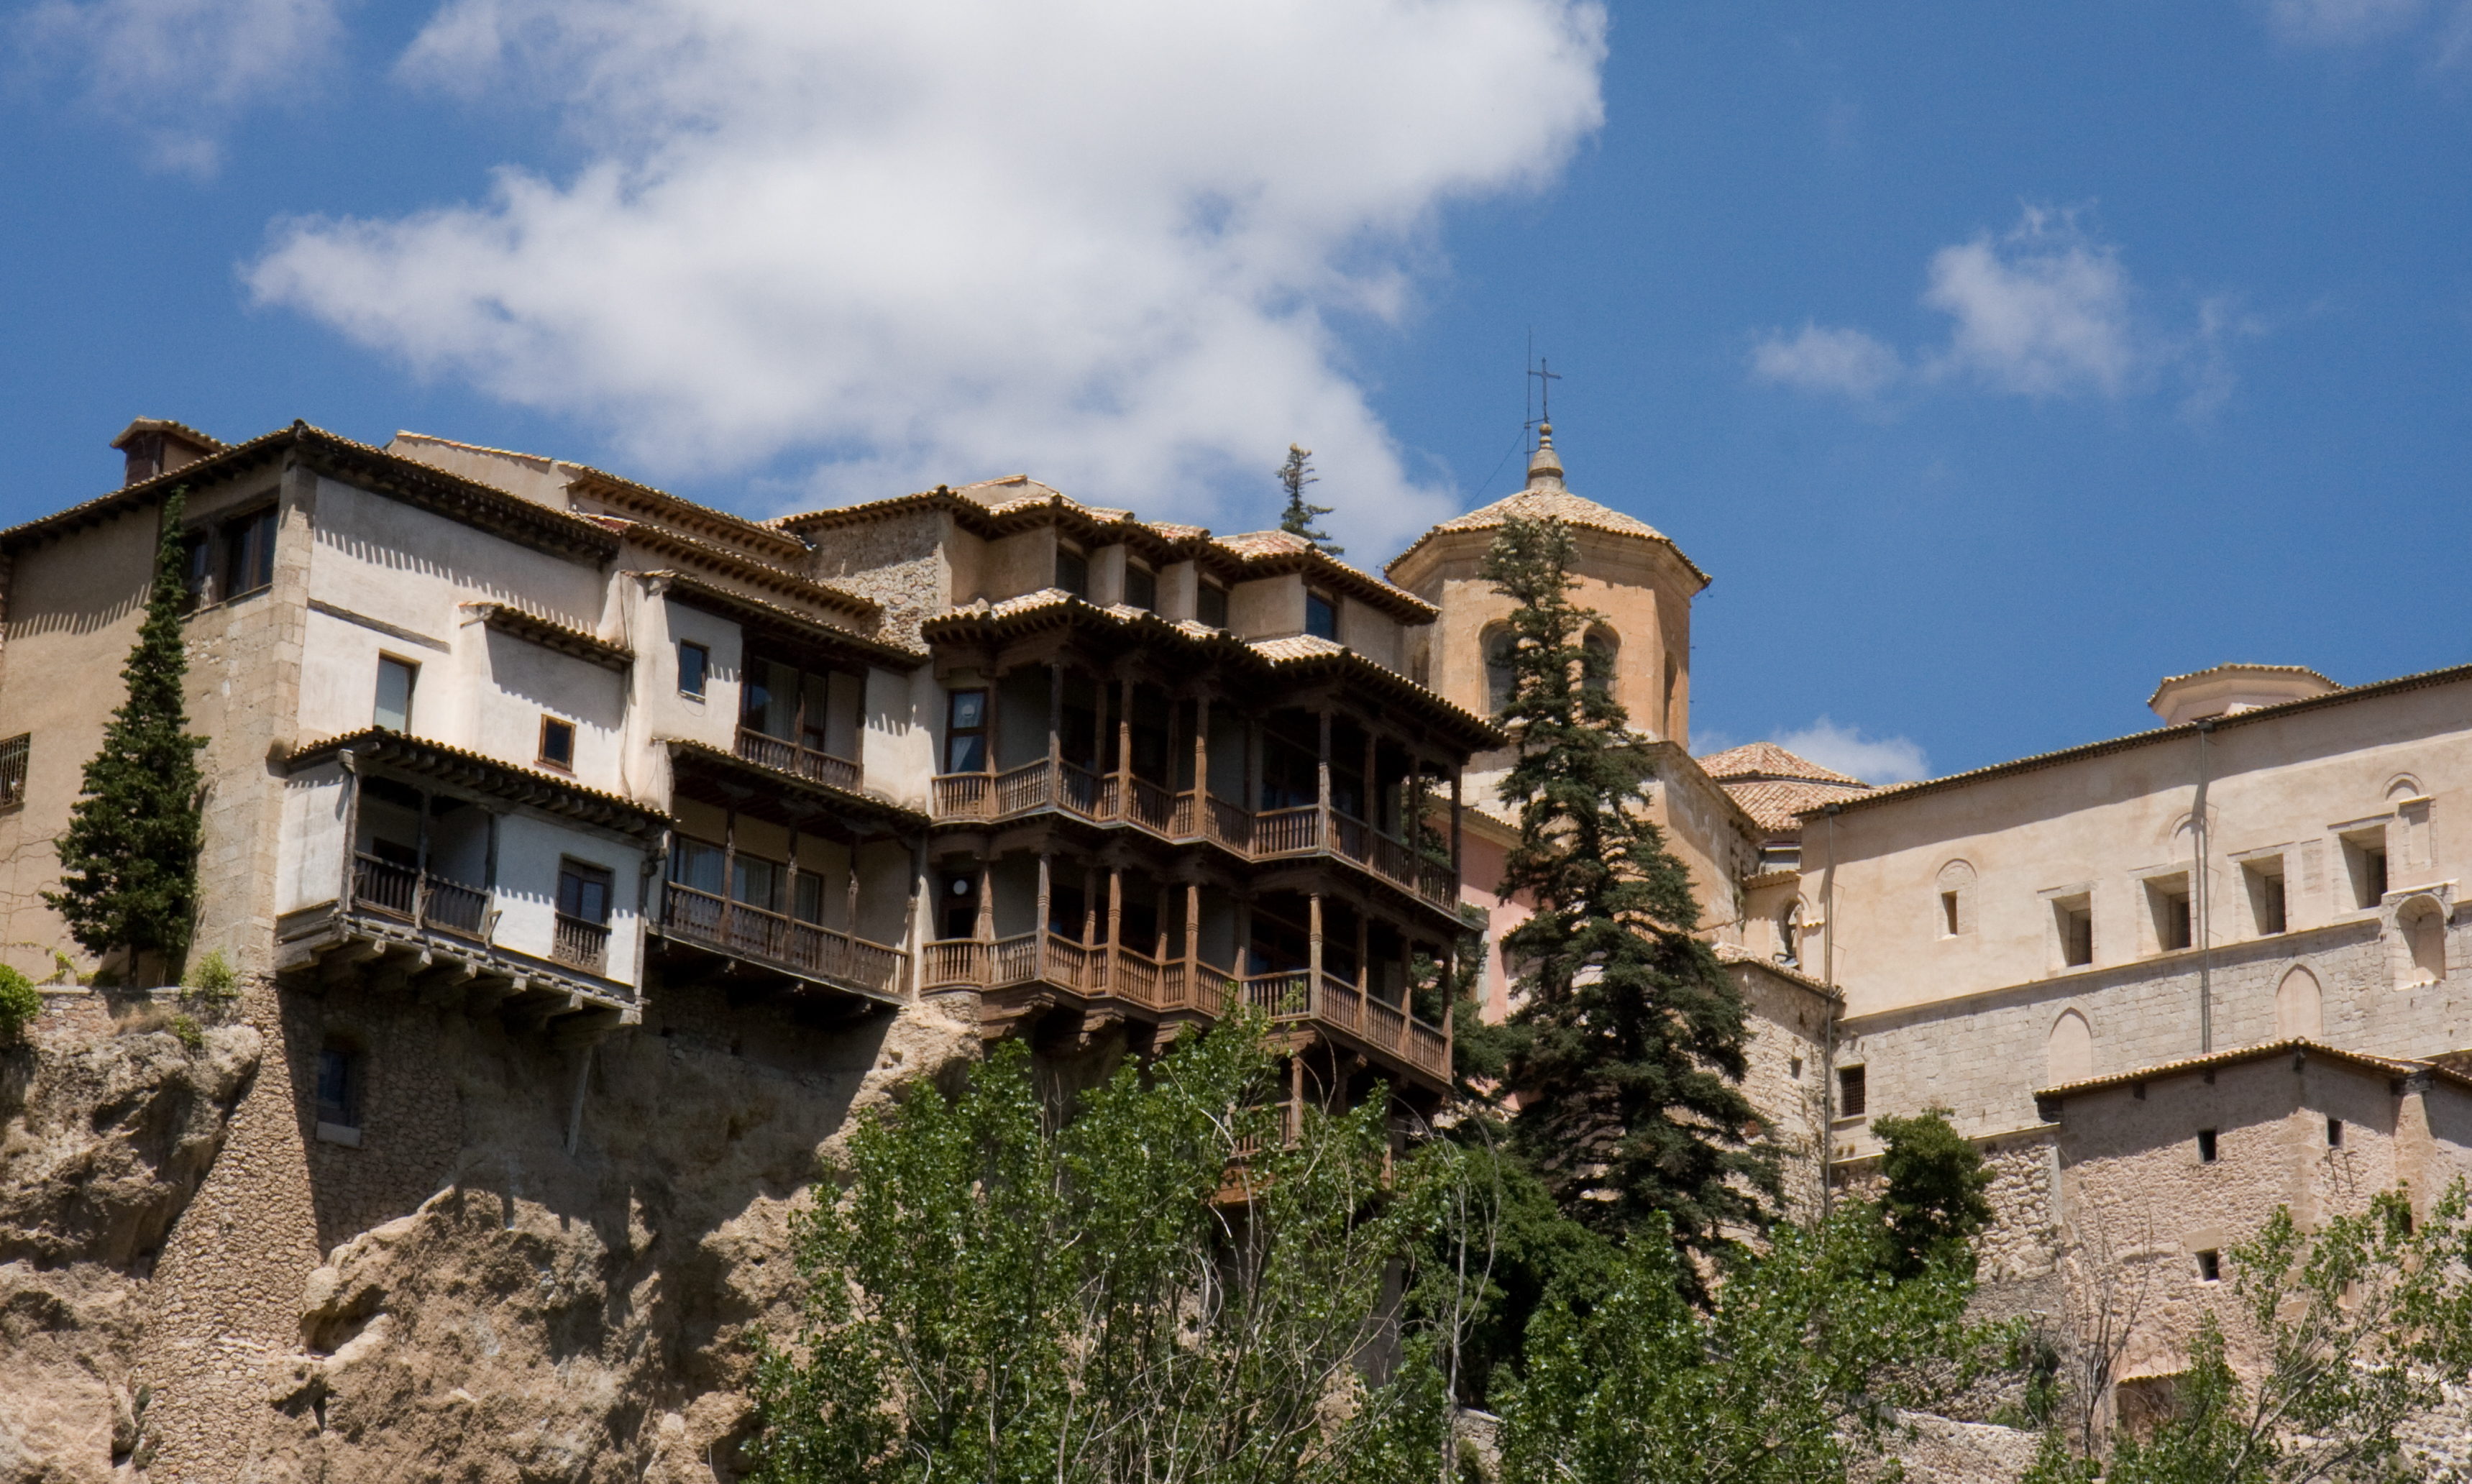 File:Cuenca, Spain   Hanging Houses (Casas Colgadas) Design Inspirations